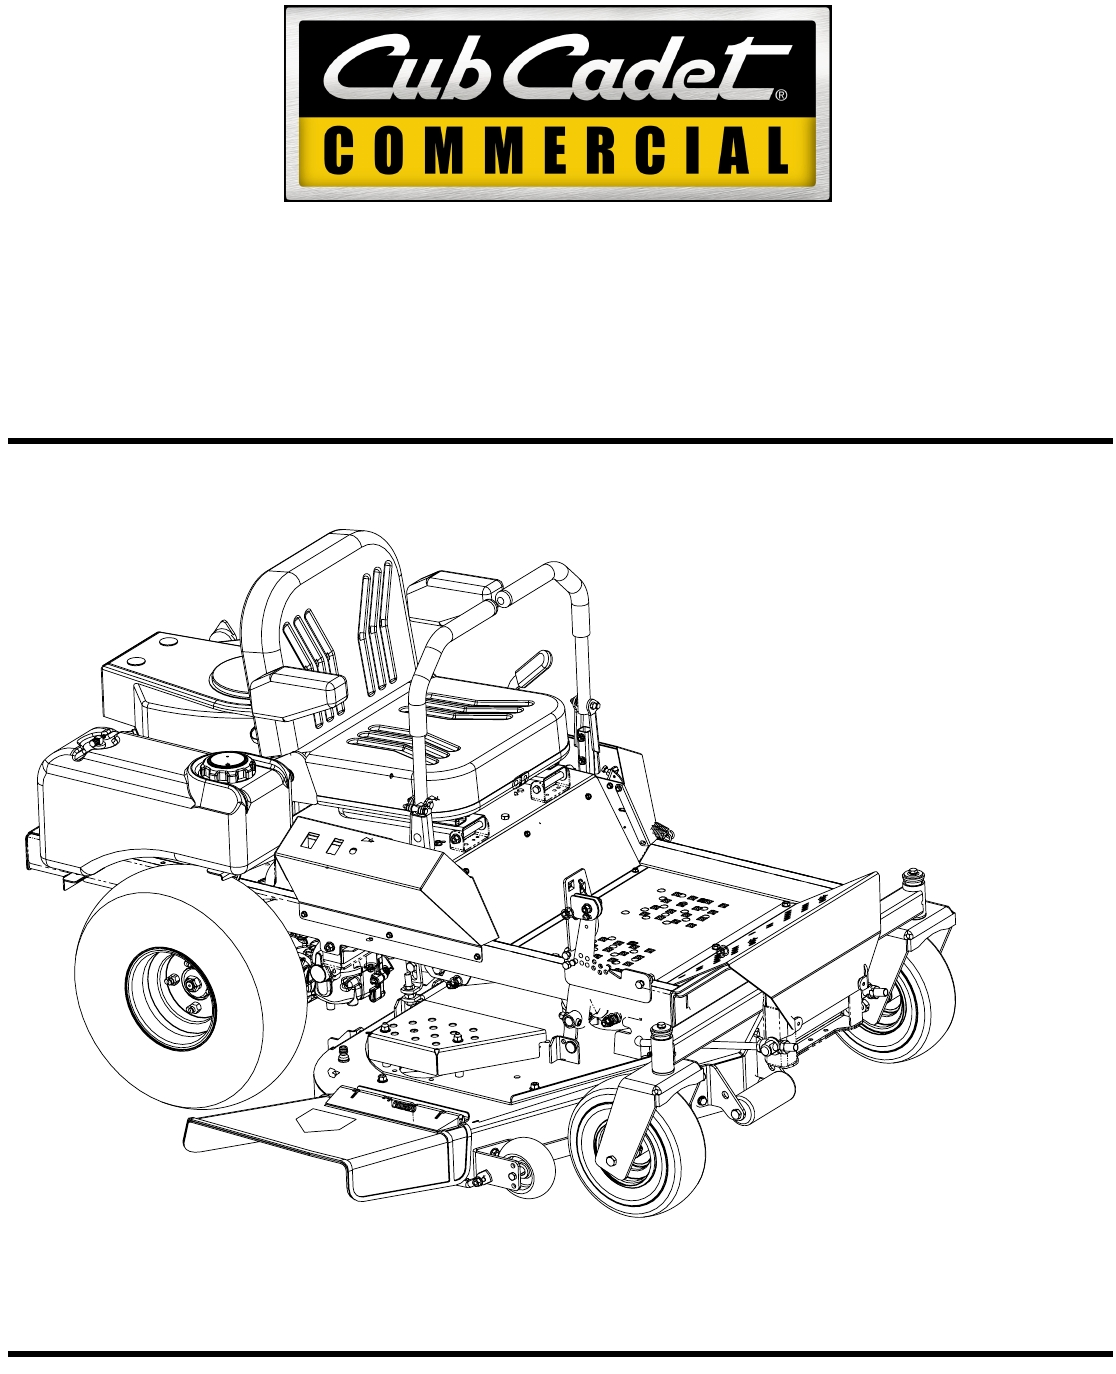 Wiring Diagram For Cub Cadet Mower: Mtd riding mower